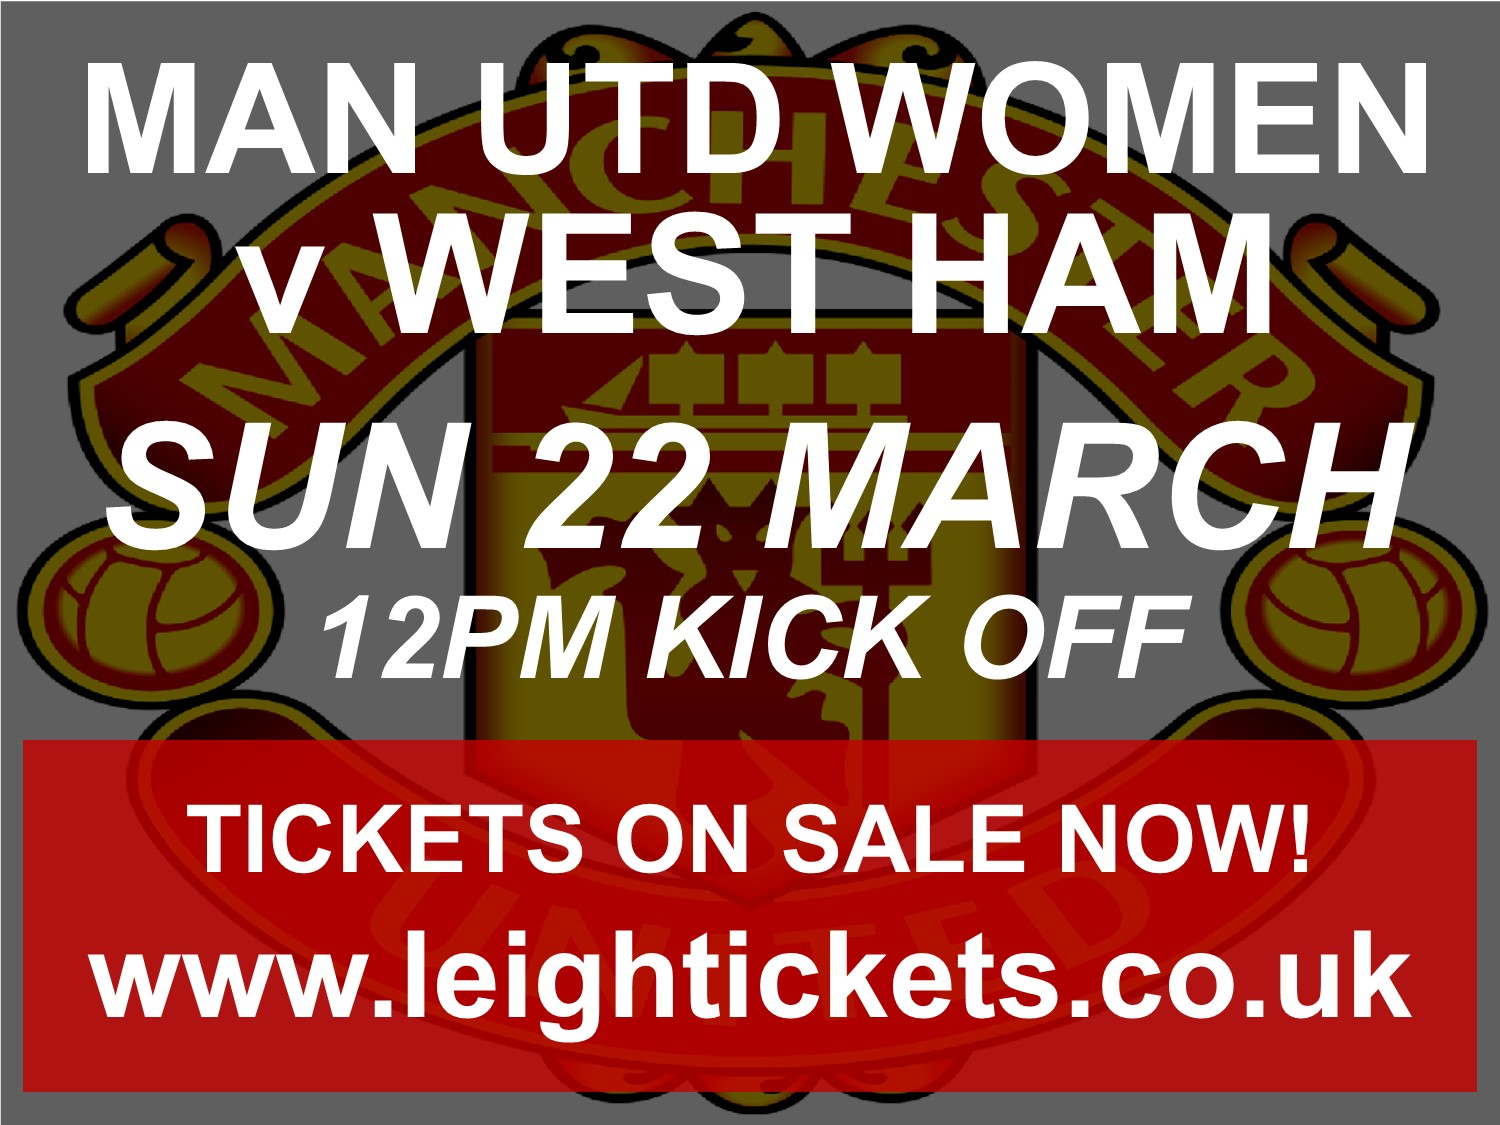 Manchester United Women v West Ham United